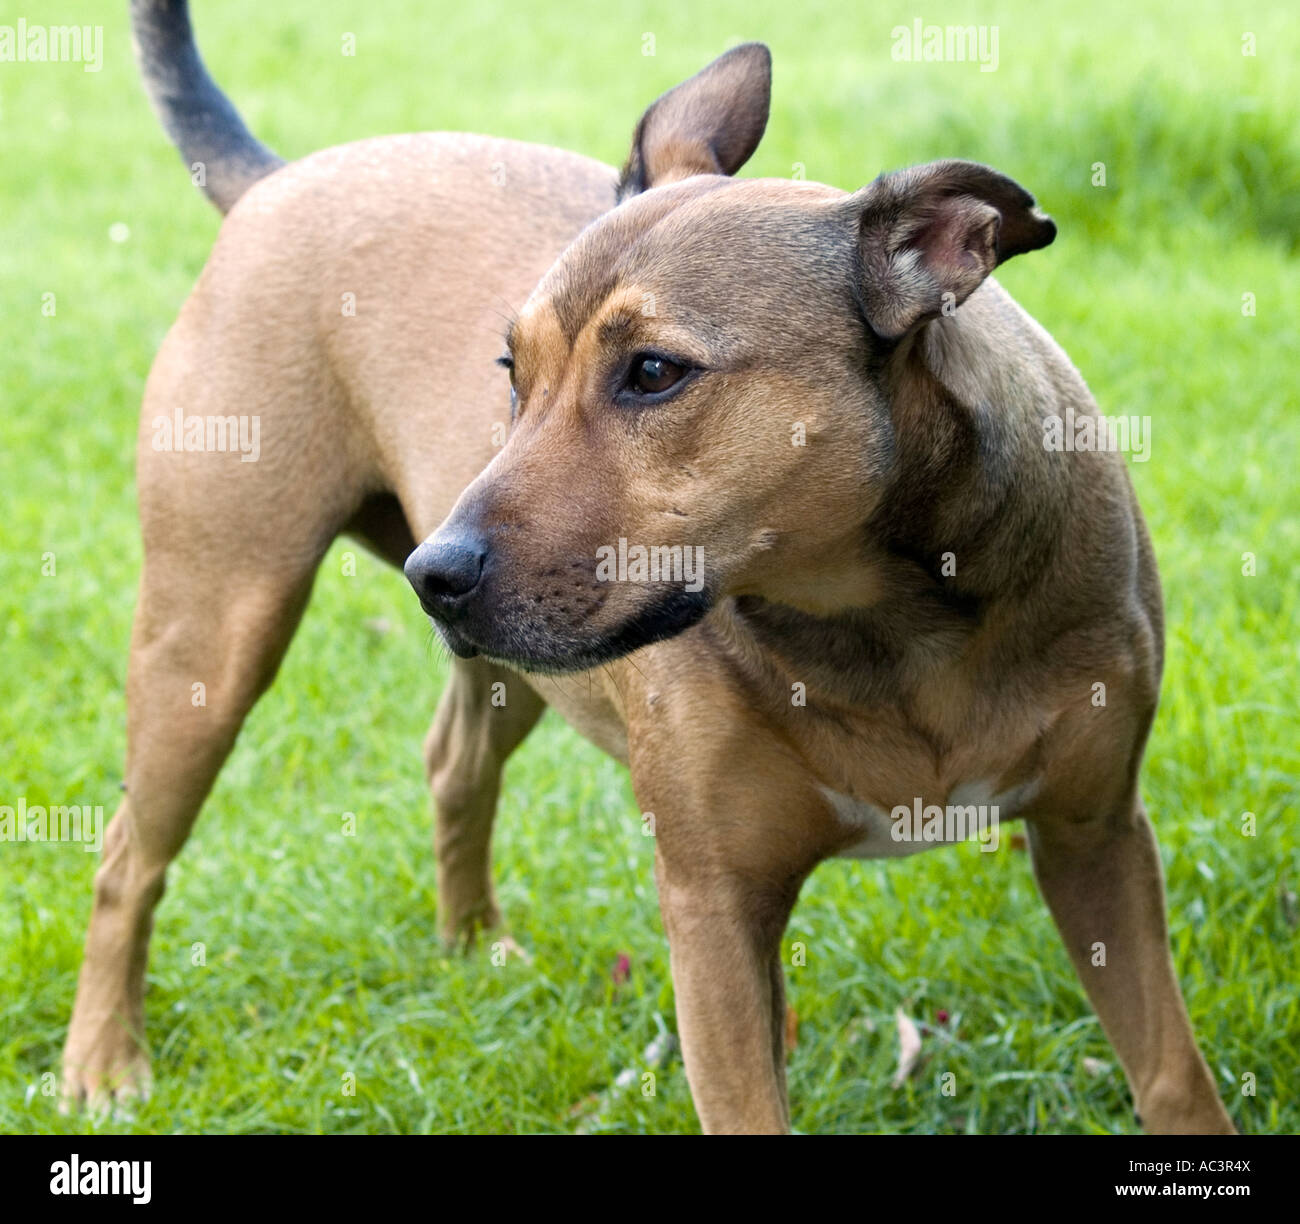 A Brown Staffordshire Bull Terrier Cross, Male Dog Stock